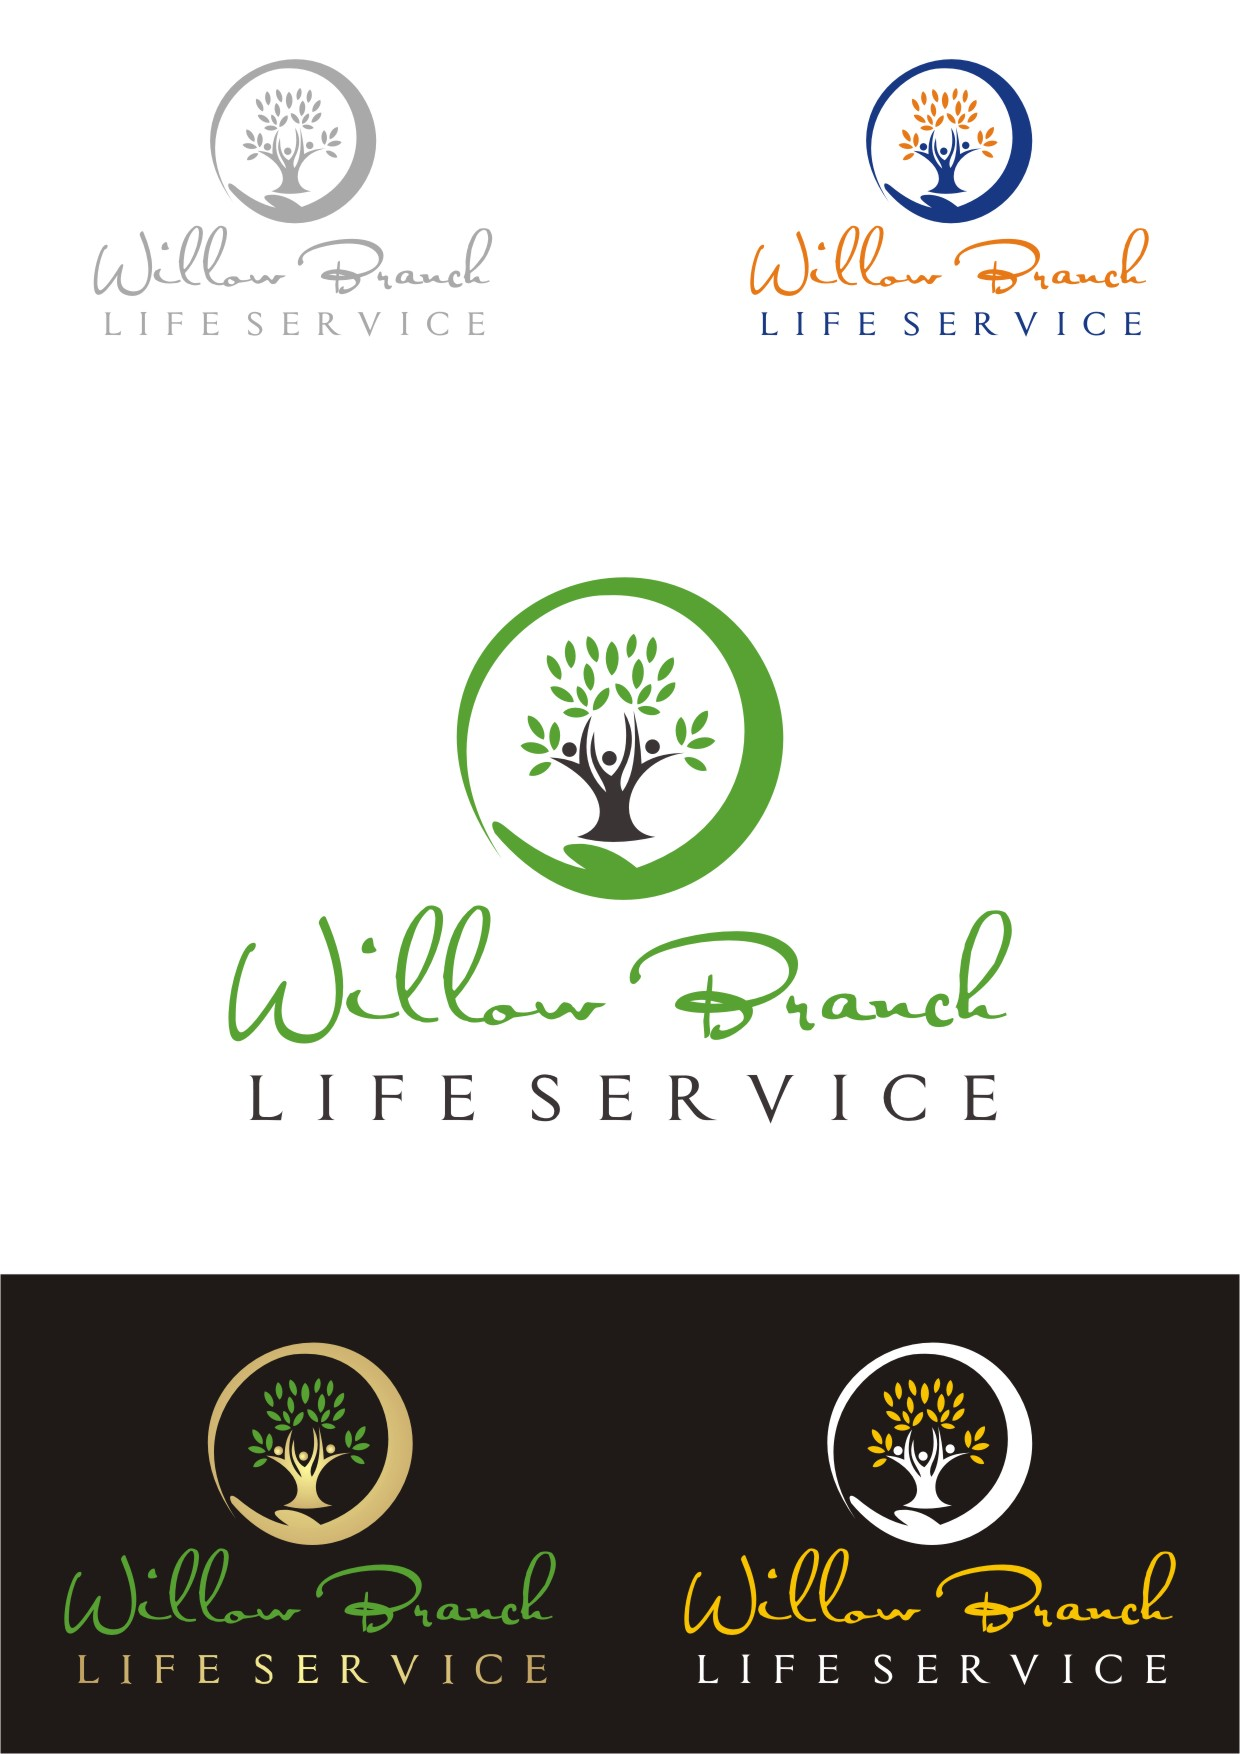 Logo Design by Lynx Graphics - Entry No. 466 in the Logo Design Contest Artistic Logo Design for Willow Branch Life Service.